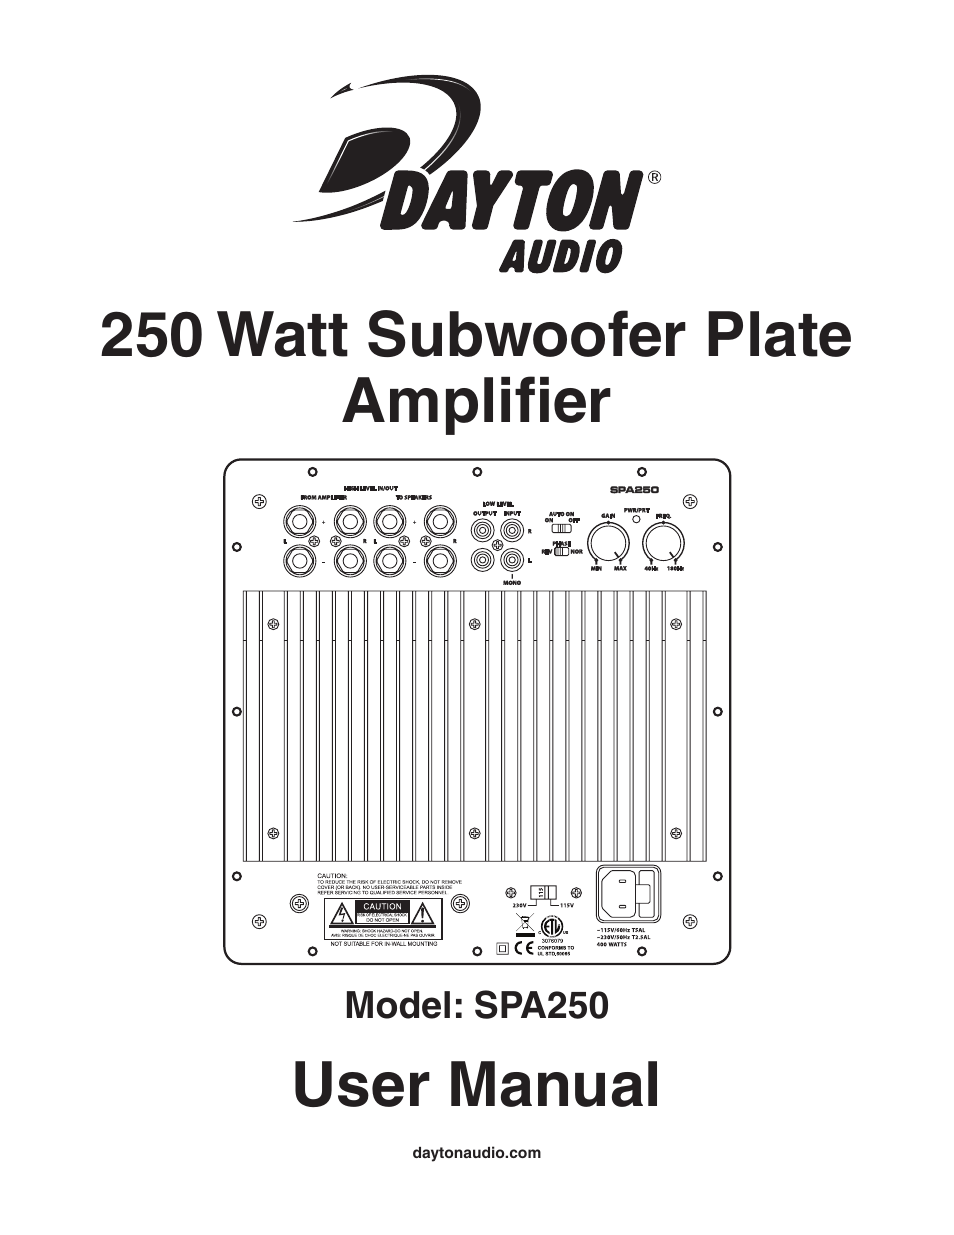 Dayton Audio SPA250 250W Subwoofer Plate Amplifier User